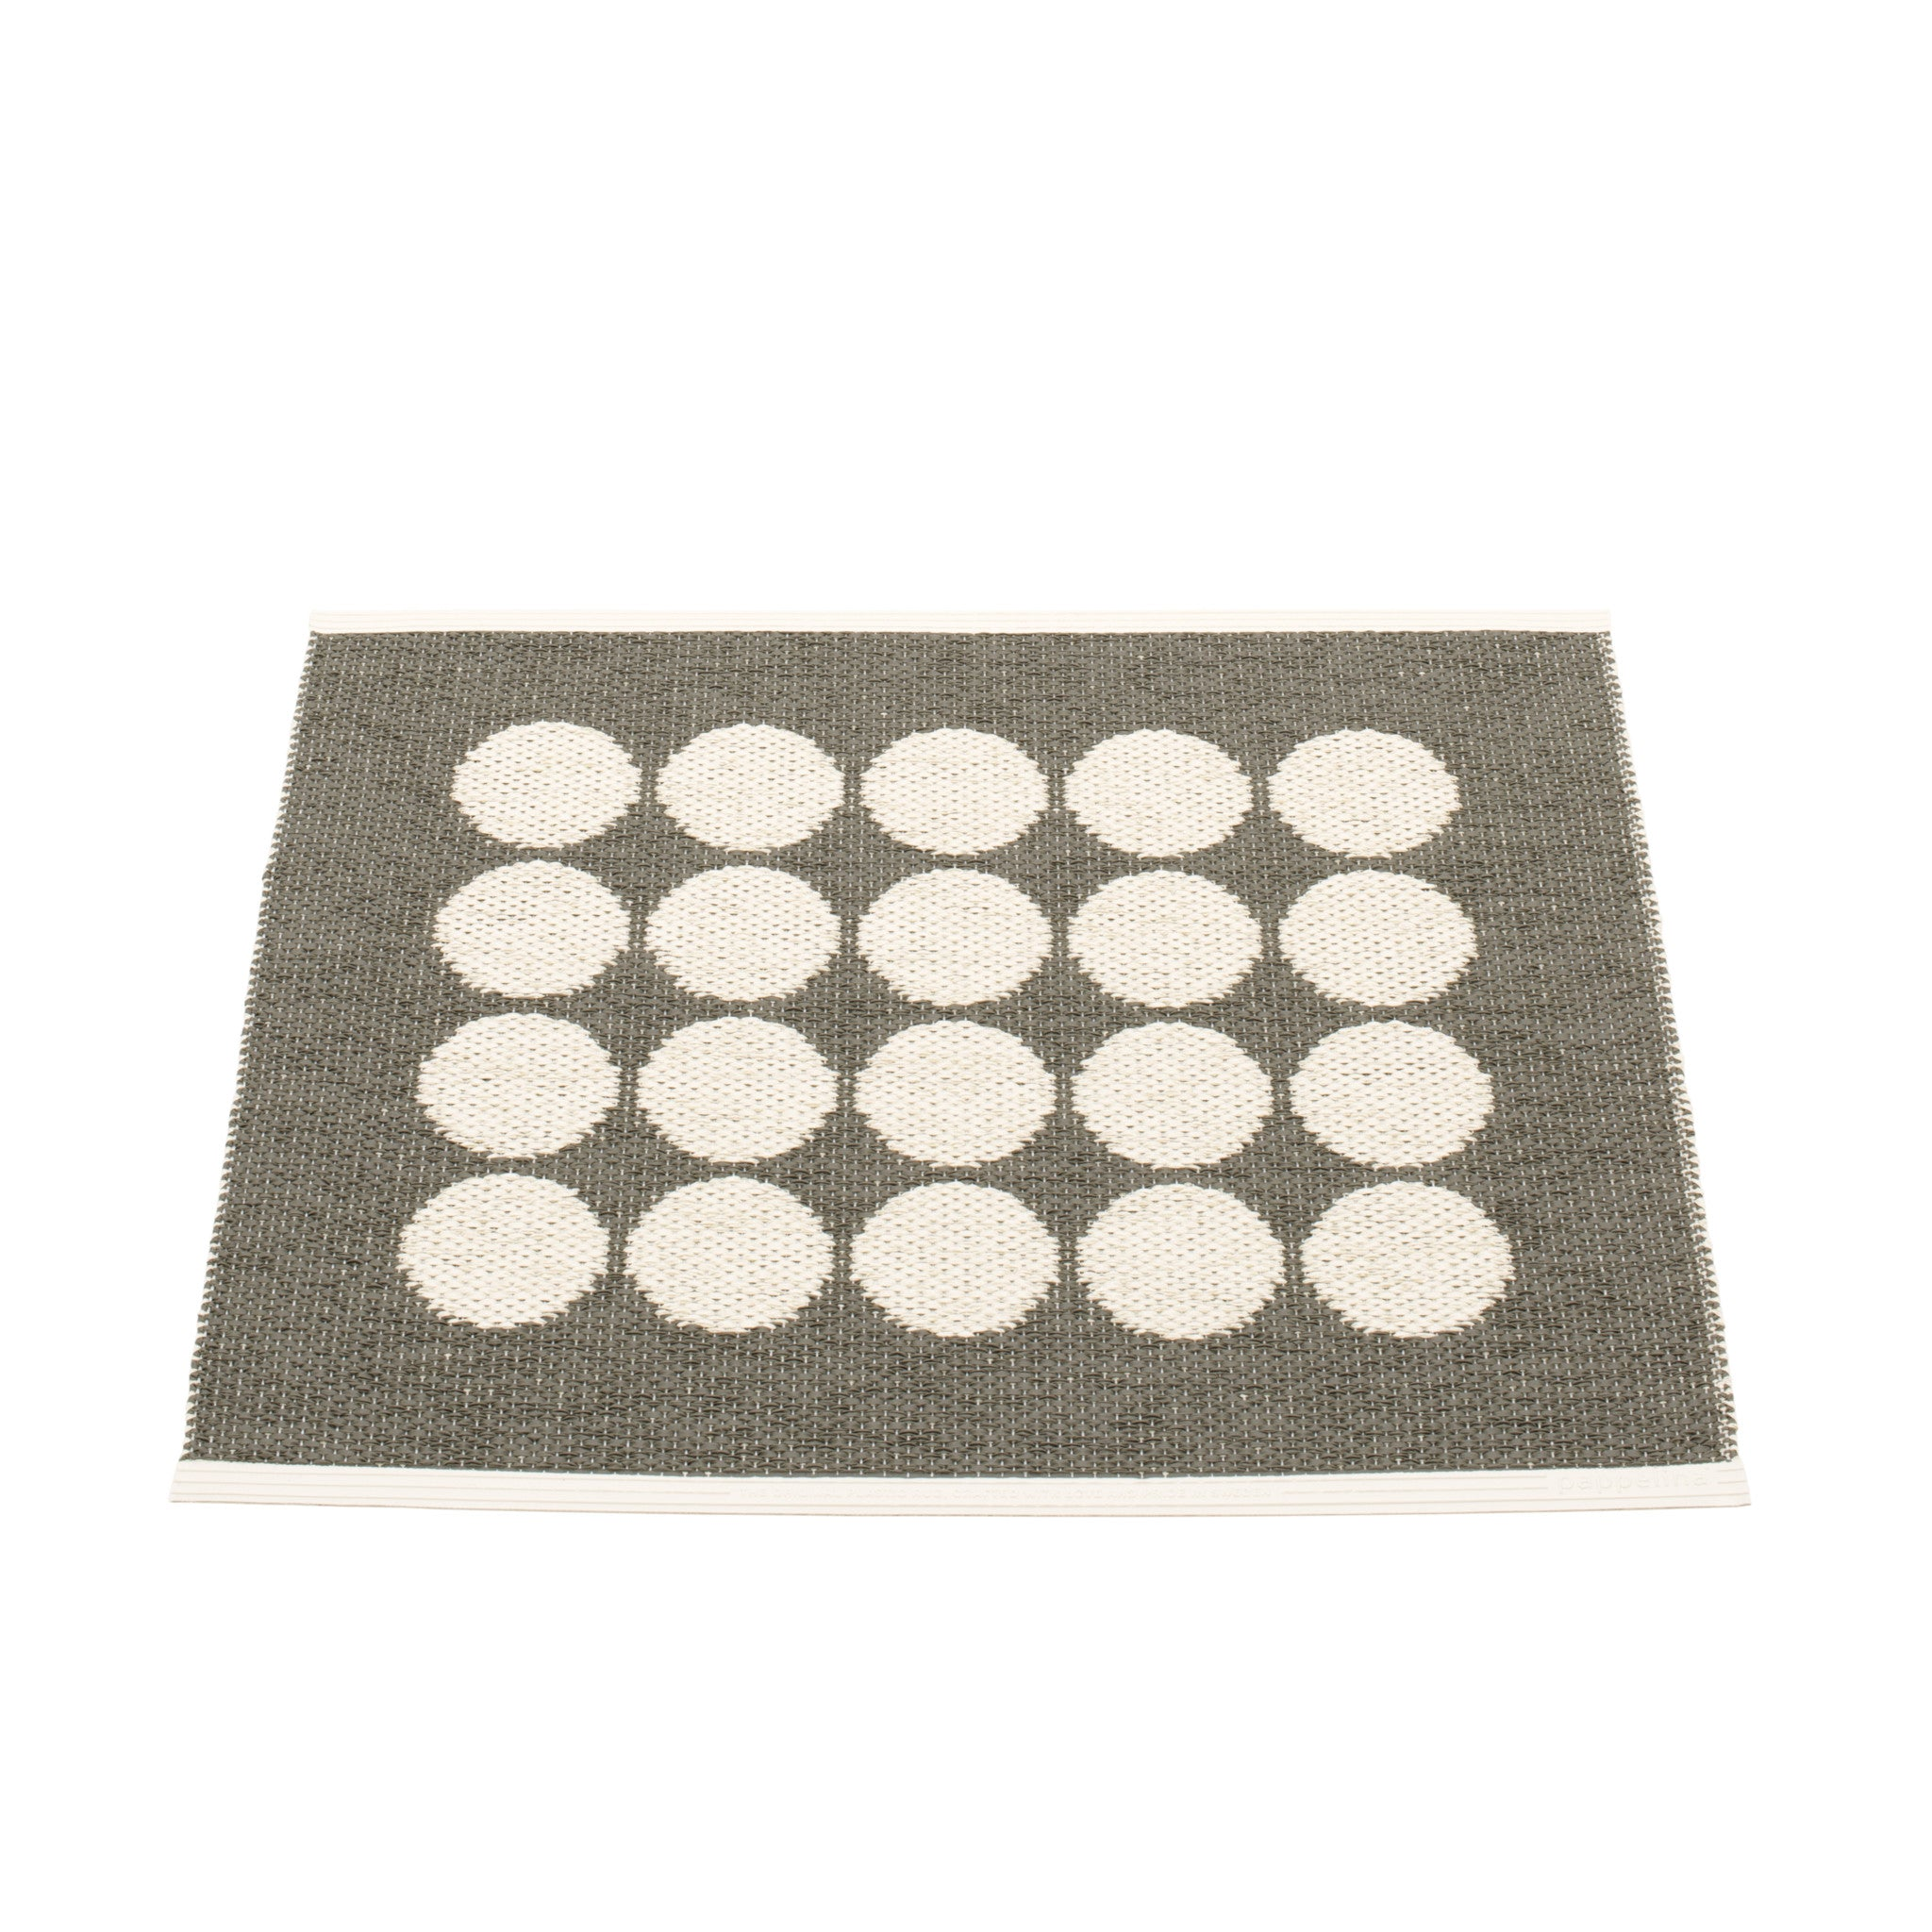 Fia Rug by Pappelina - haus®